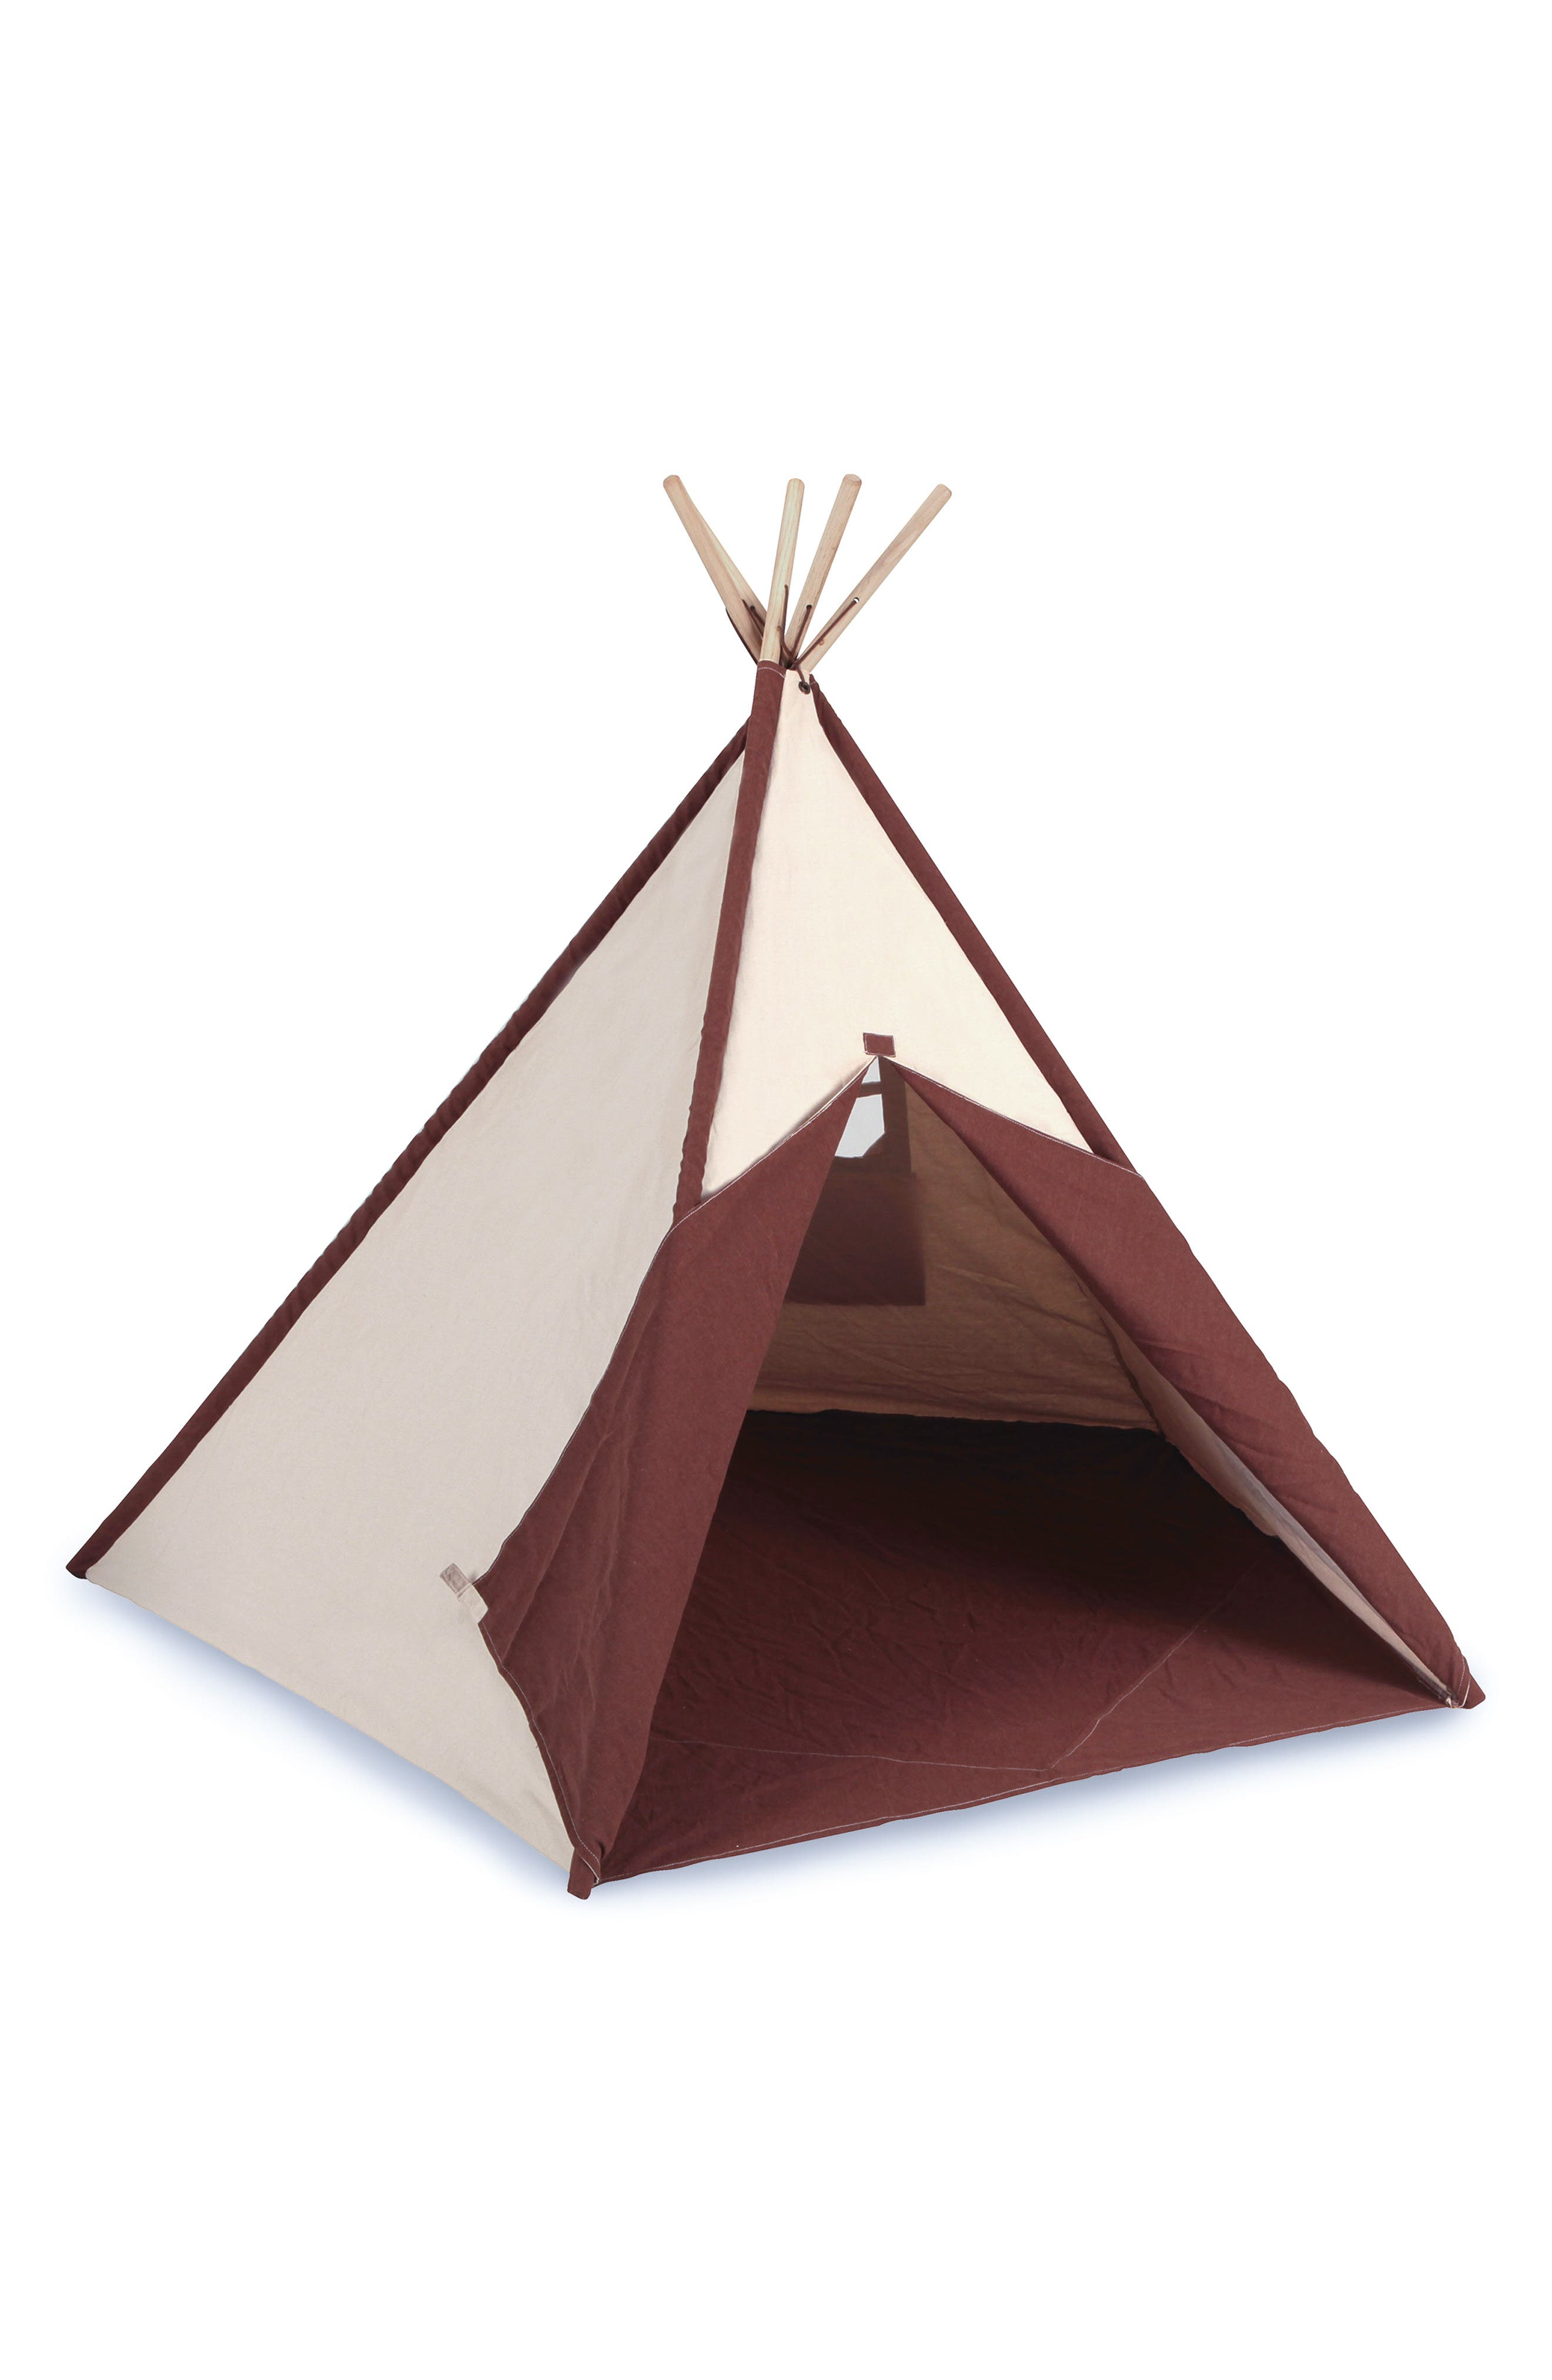 PACIFIC PLAY TENTS,                             Cotton Canvas Teepee,                             Alternate thumbnail 2, color,                             250